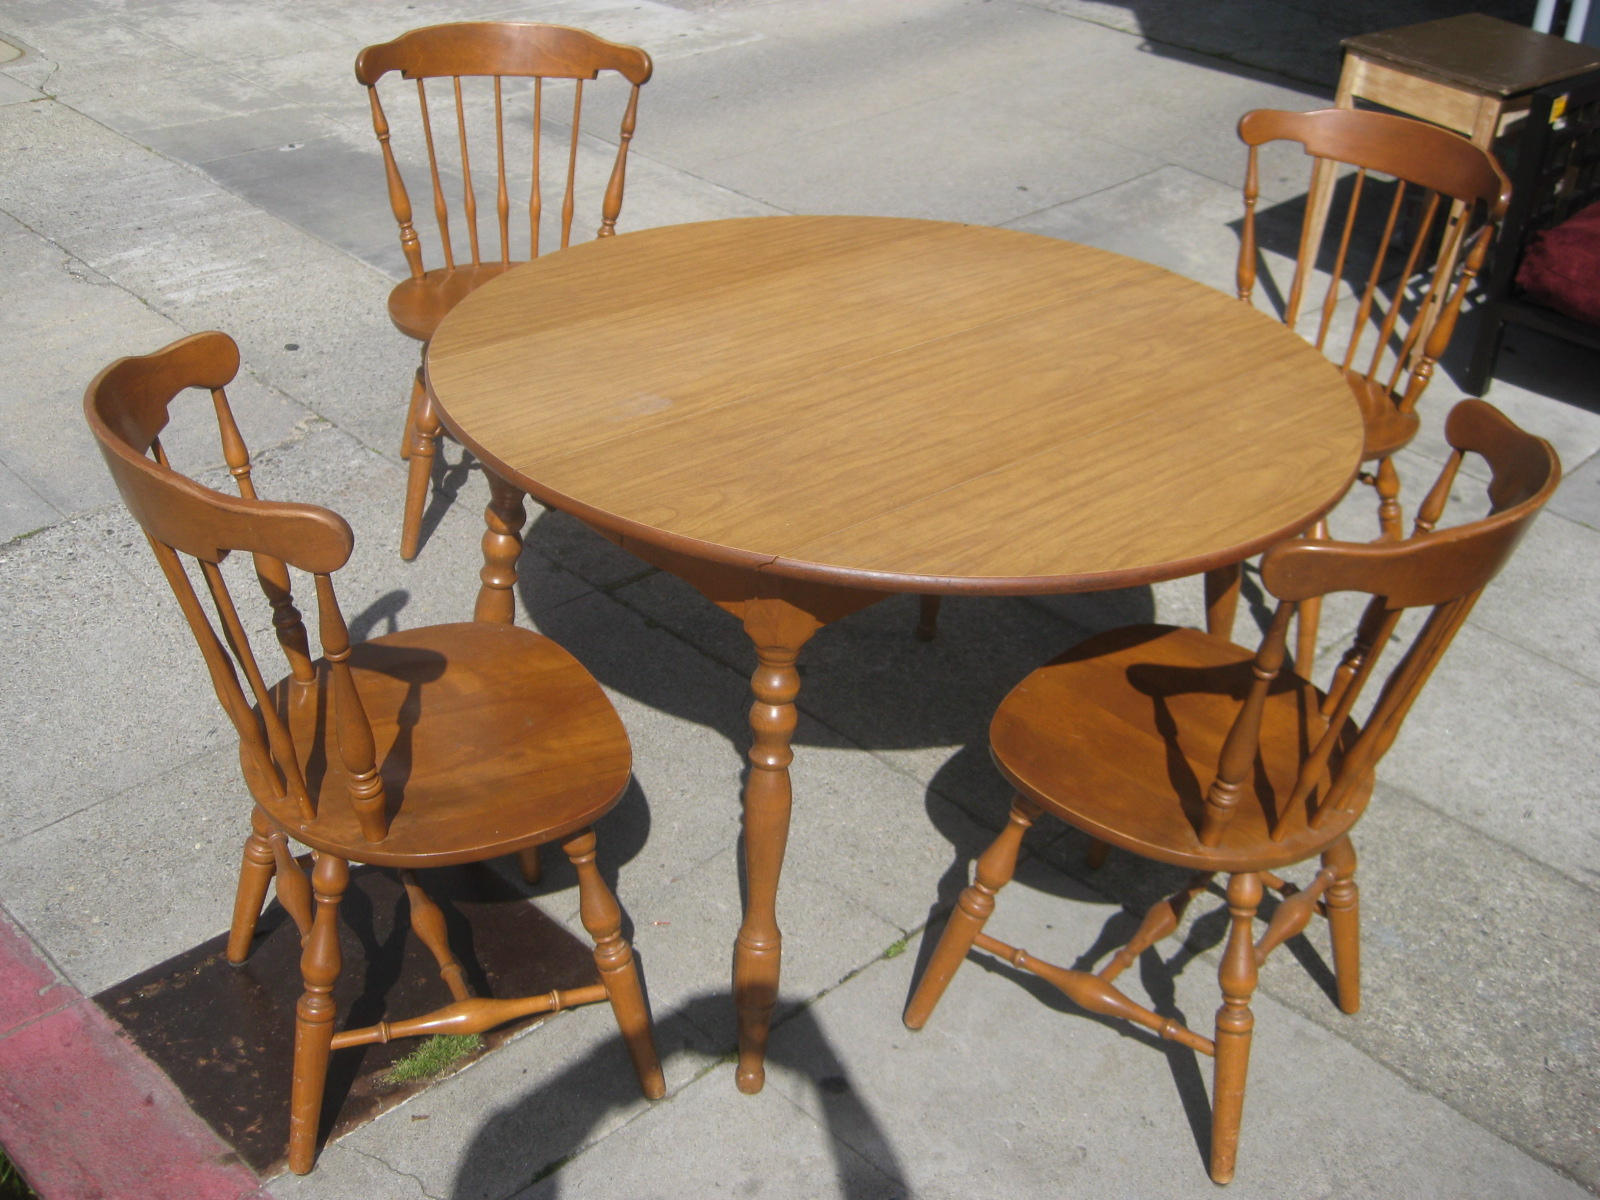 Kitchen Table And Chair Feeder Accessories Uhuru Furniture Collectibles Sold 2